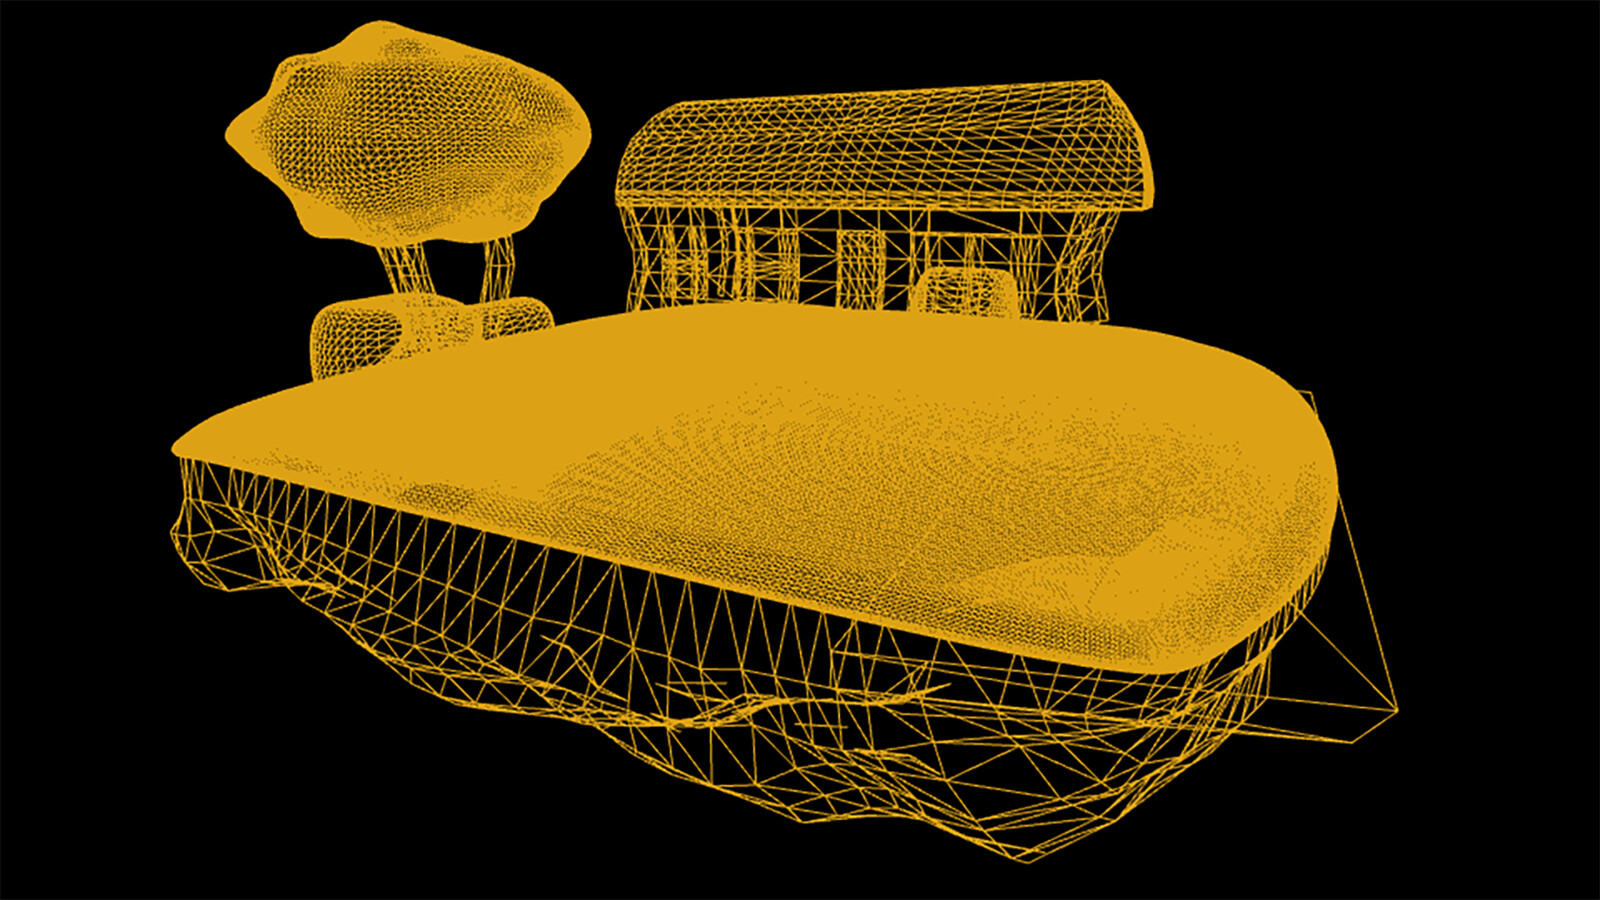 Wireframe of Entire Diorama Grass is very high poly to get a very small, spiky Tessellation in hopes of imitating real grass.